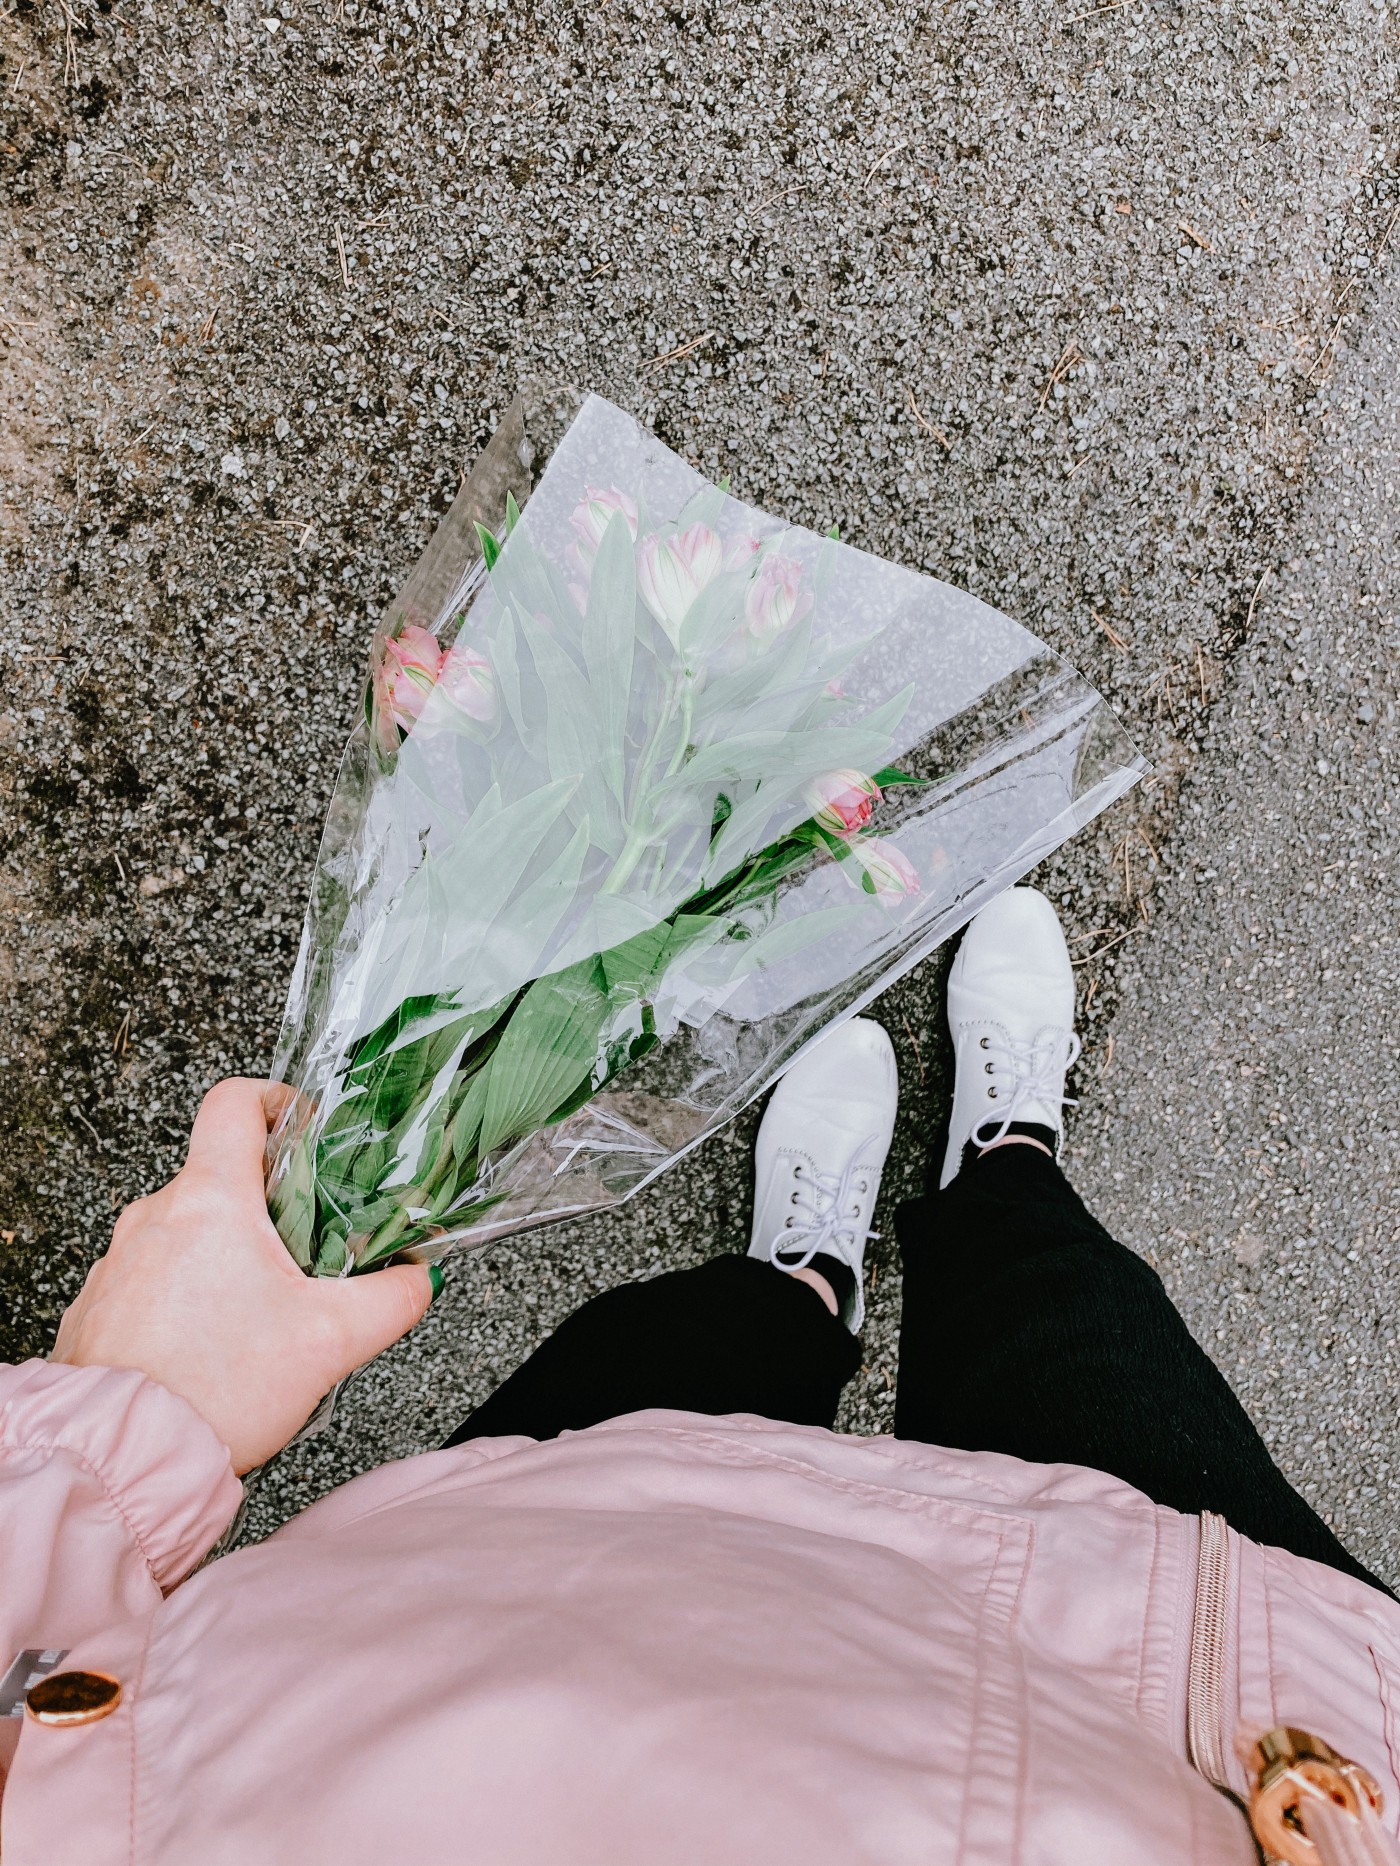 A person holding a bouquet of flowers.